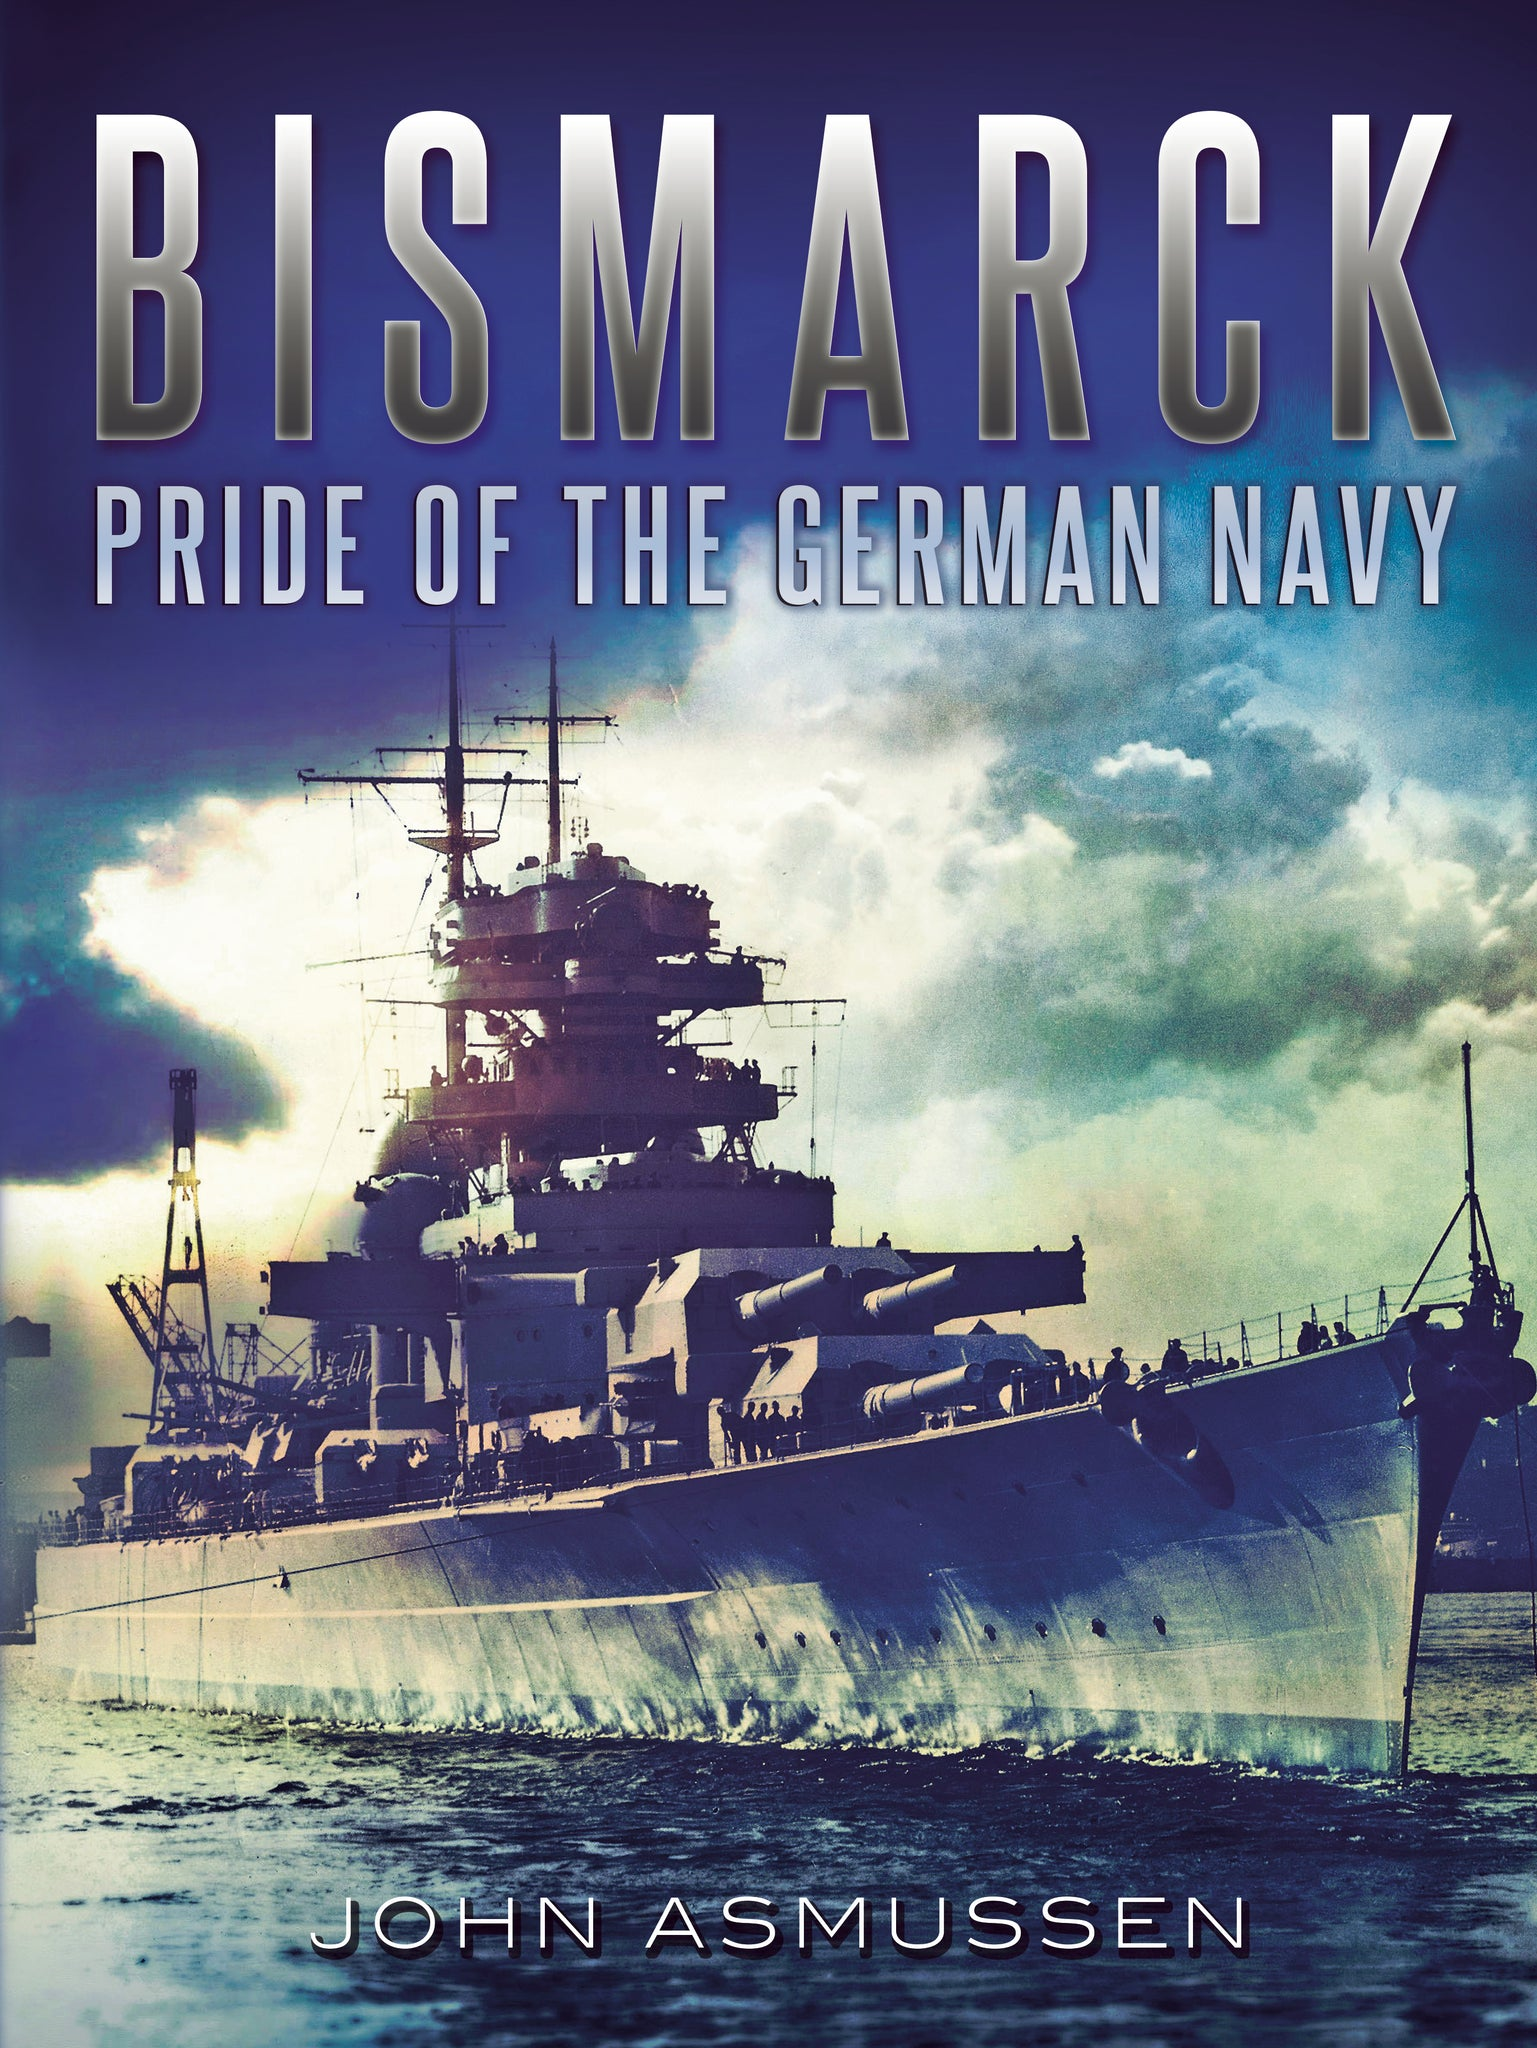 Bismarck: The Pride of the German Navy - available now from Fonthill Media